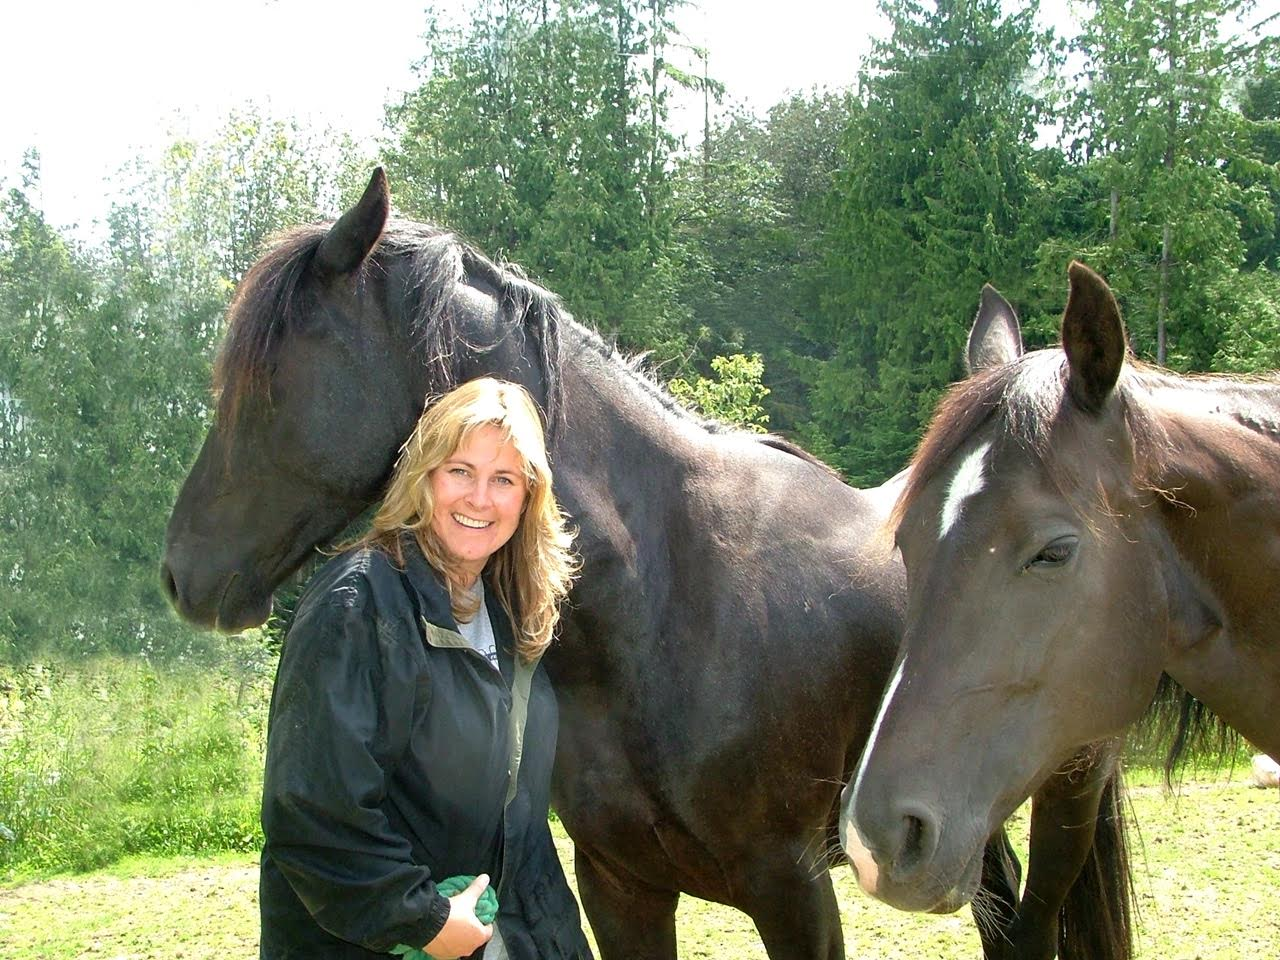 Sandra Wallin  is an educator and psychotherapist who has been learning from horses her entire life. Specializing in belief change psychology, nature based teaching and equine guided learning, Sandra helps visionaries of all ages, transform their lives and/or businesses, quickly, easily and joyfully - often in the company of horses.